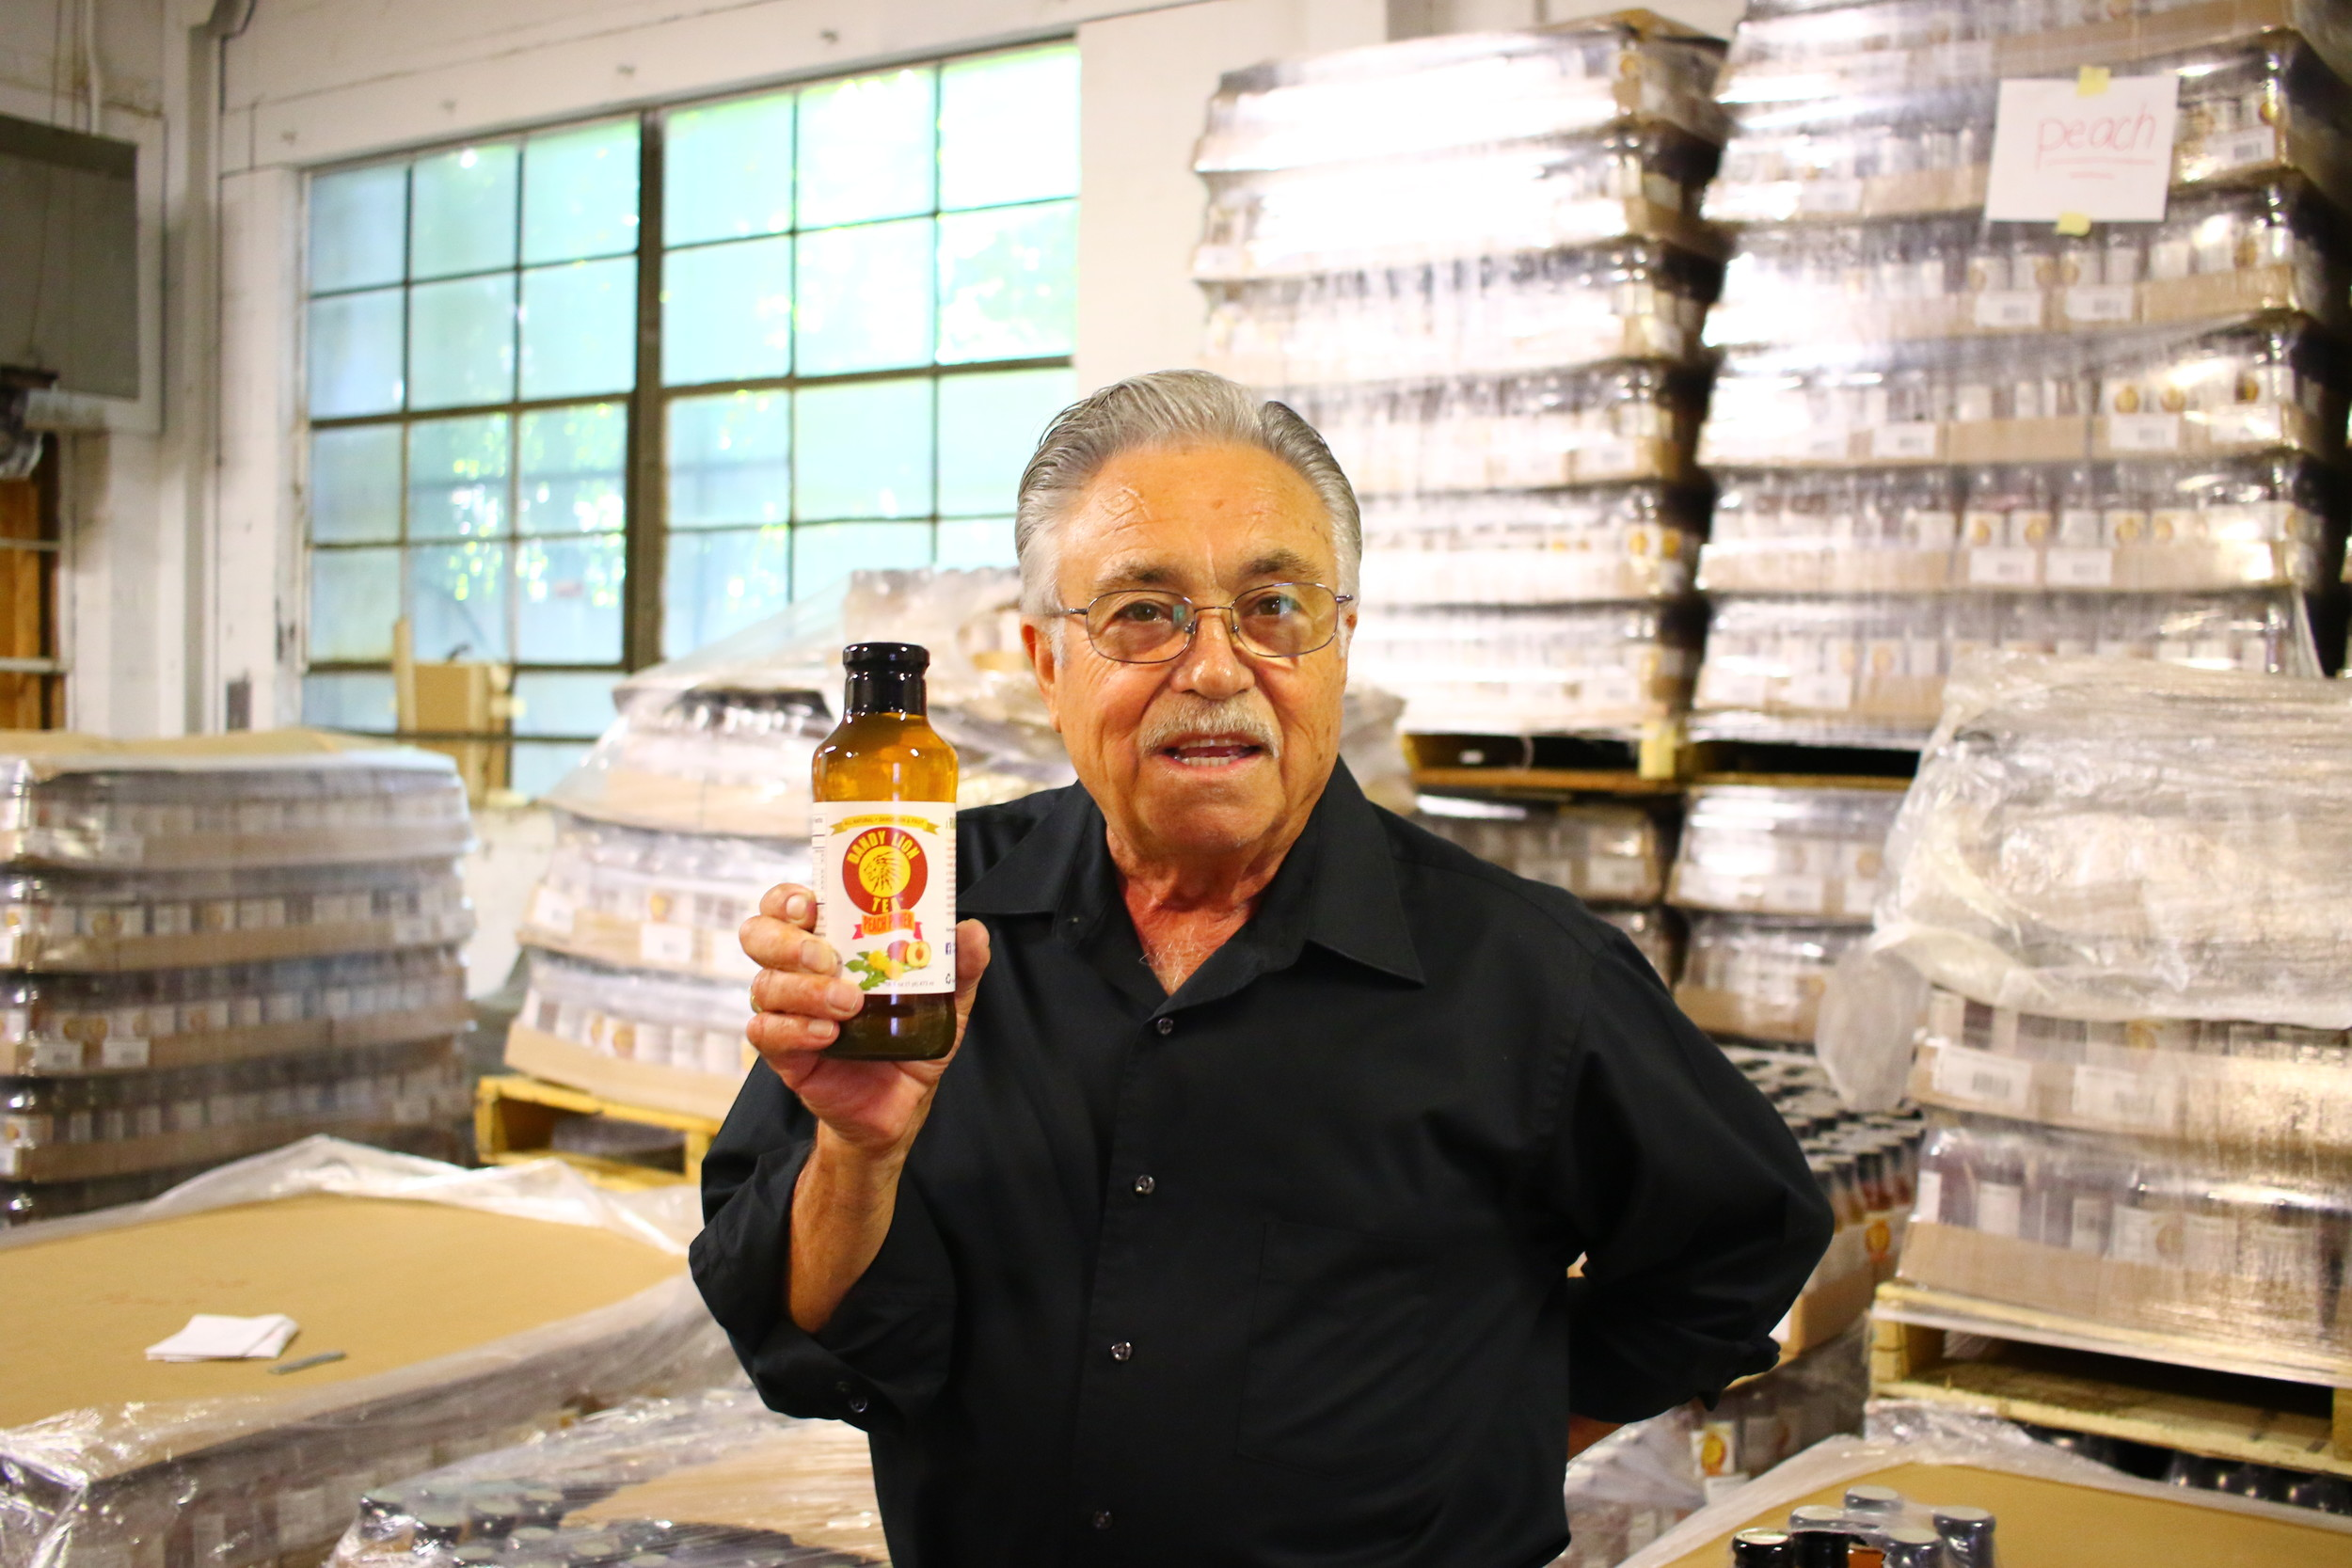 Domenick Pagano, an Italian immigrant, started a herbal juice company at 75 years of age.